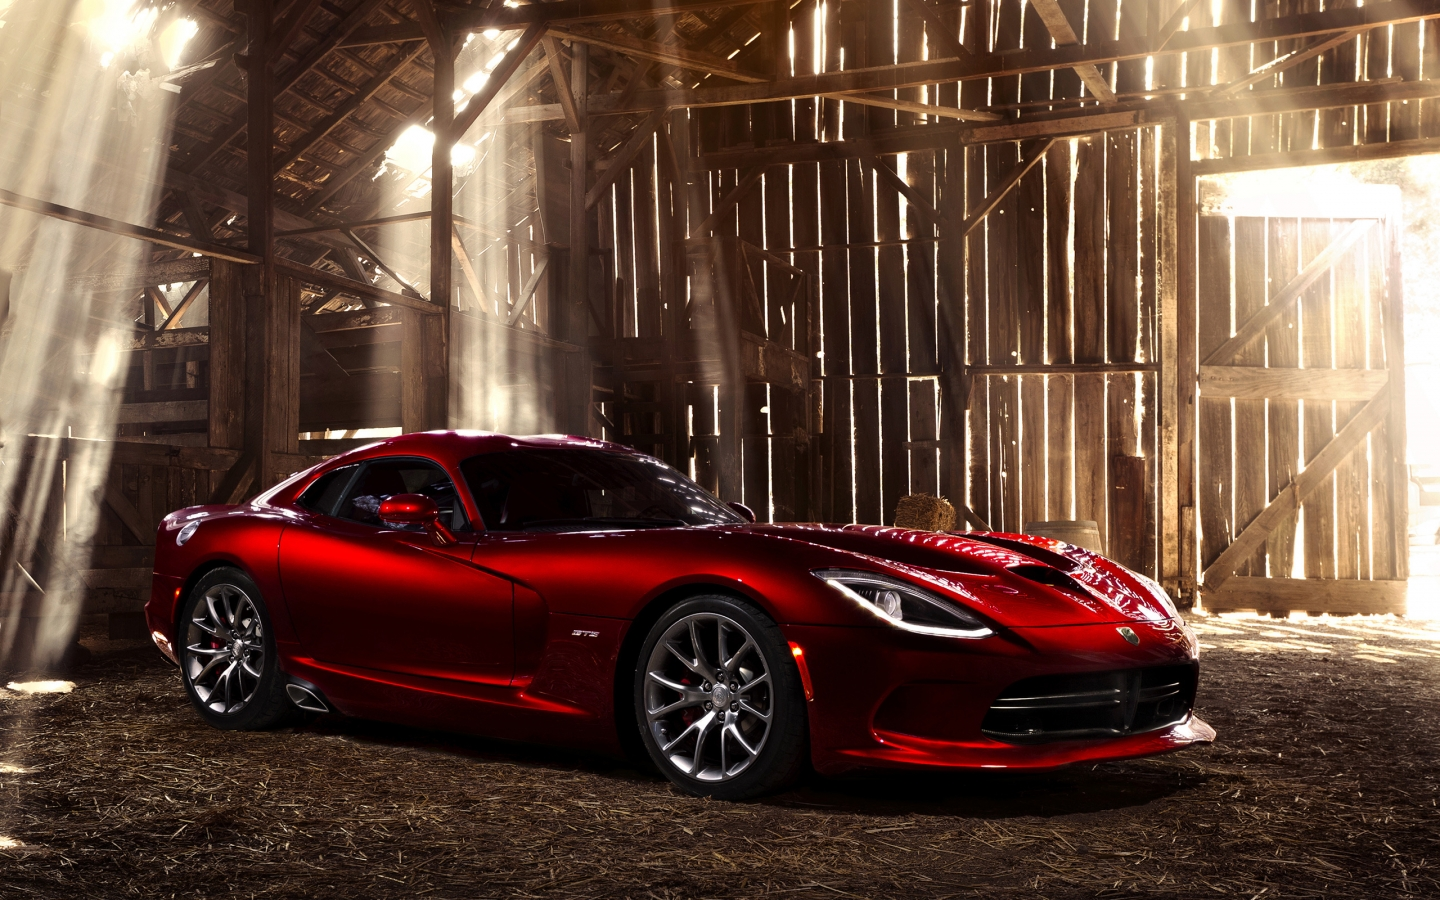 Amazing Dodge SRT Viper GTS for 1440 x 900 widescreen resolution